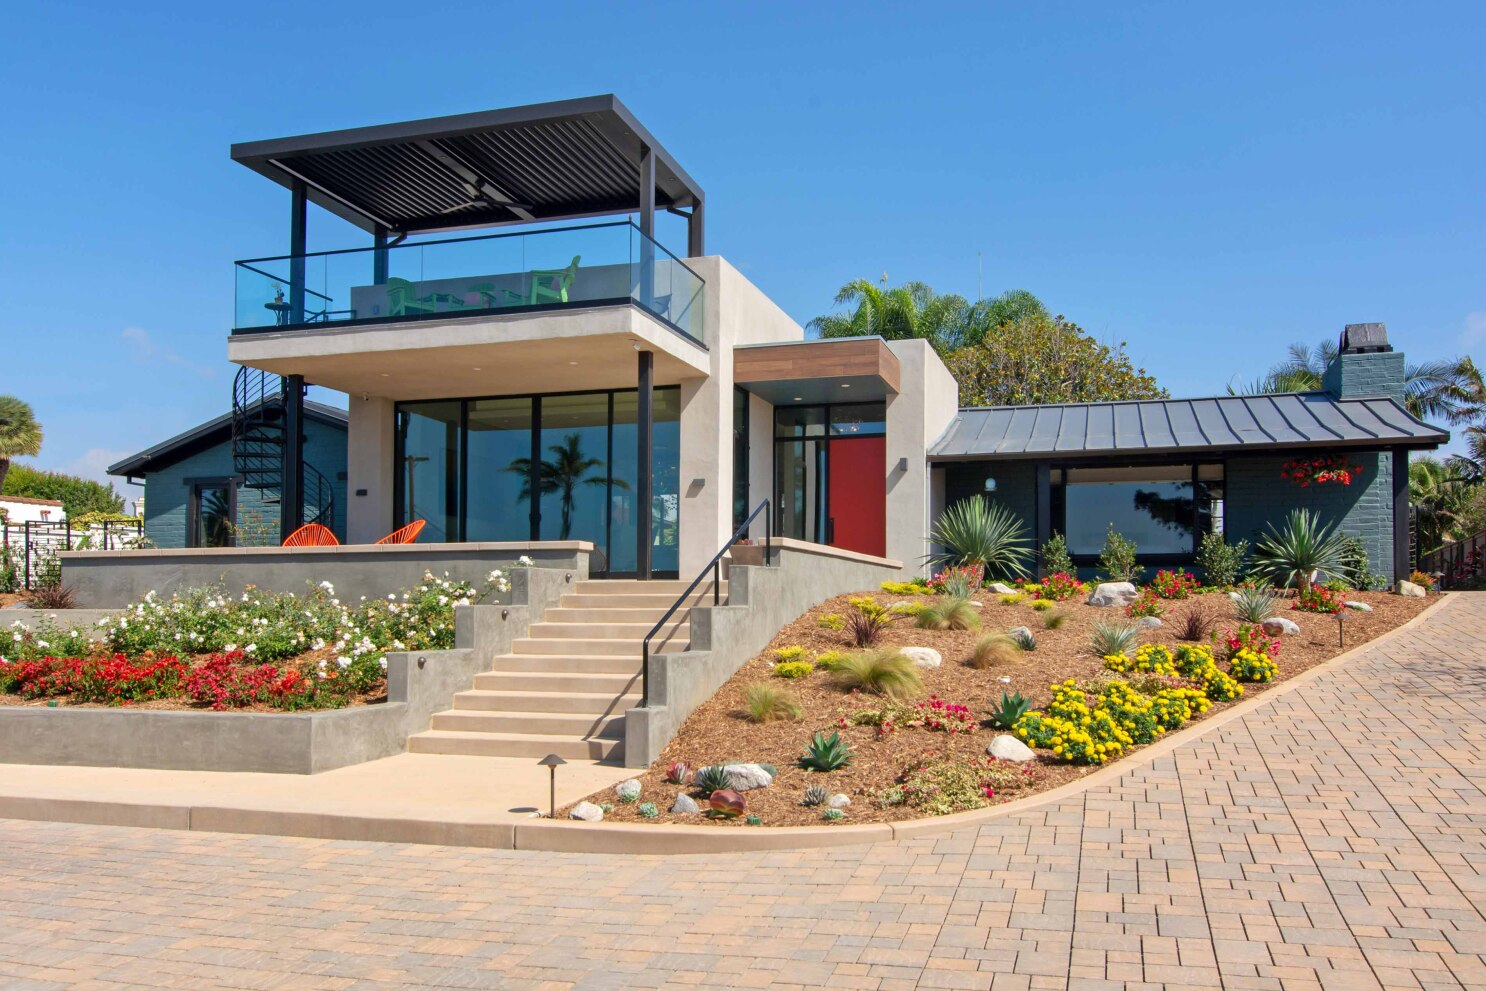 Oct. 12 home tour showcases modern architecture